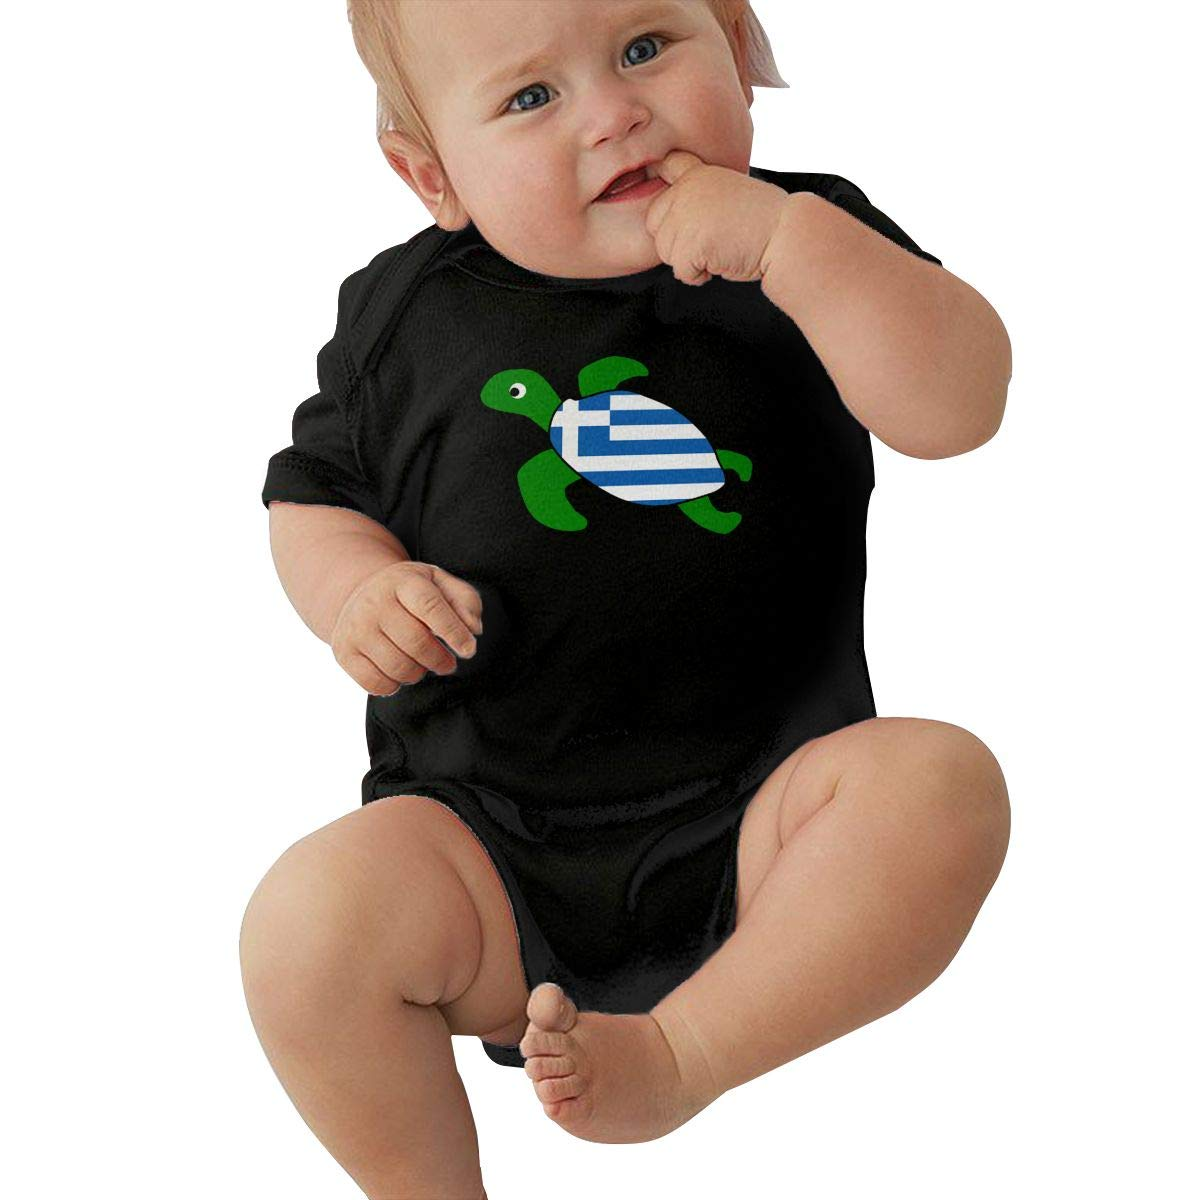 Baby Boys Sea Turtle Greece Greek Flag Short Sleeve Climbing Clothes Playsuit Suit 6-24 Months